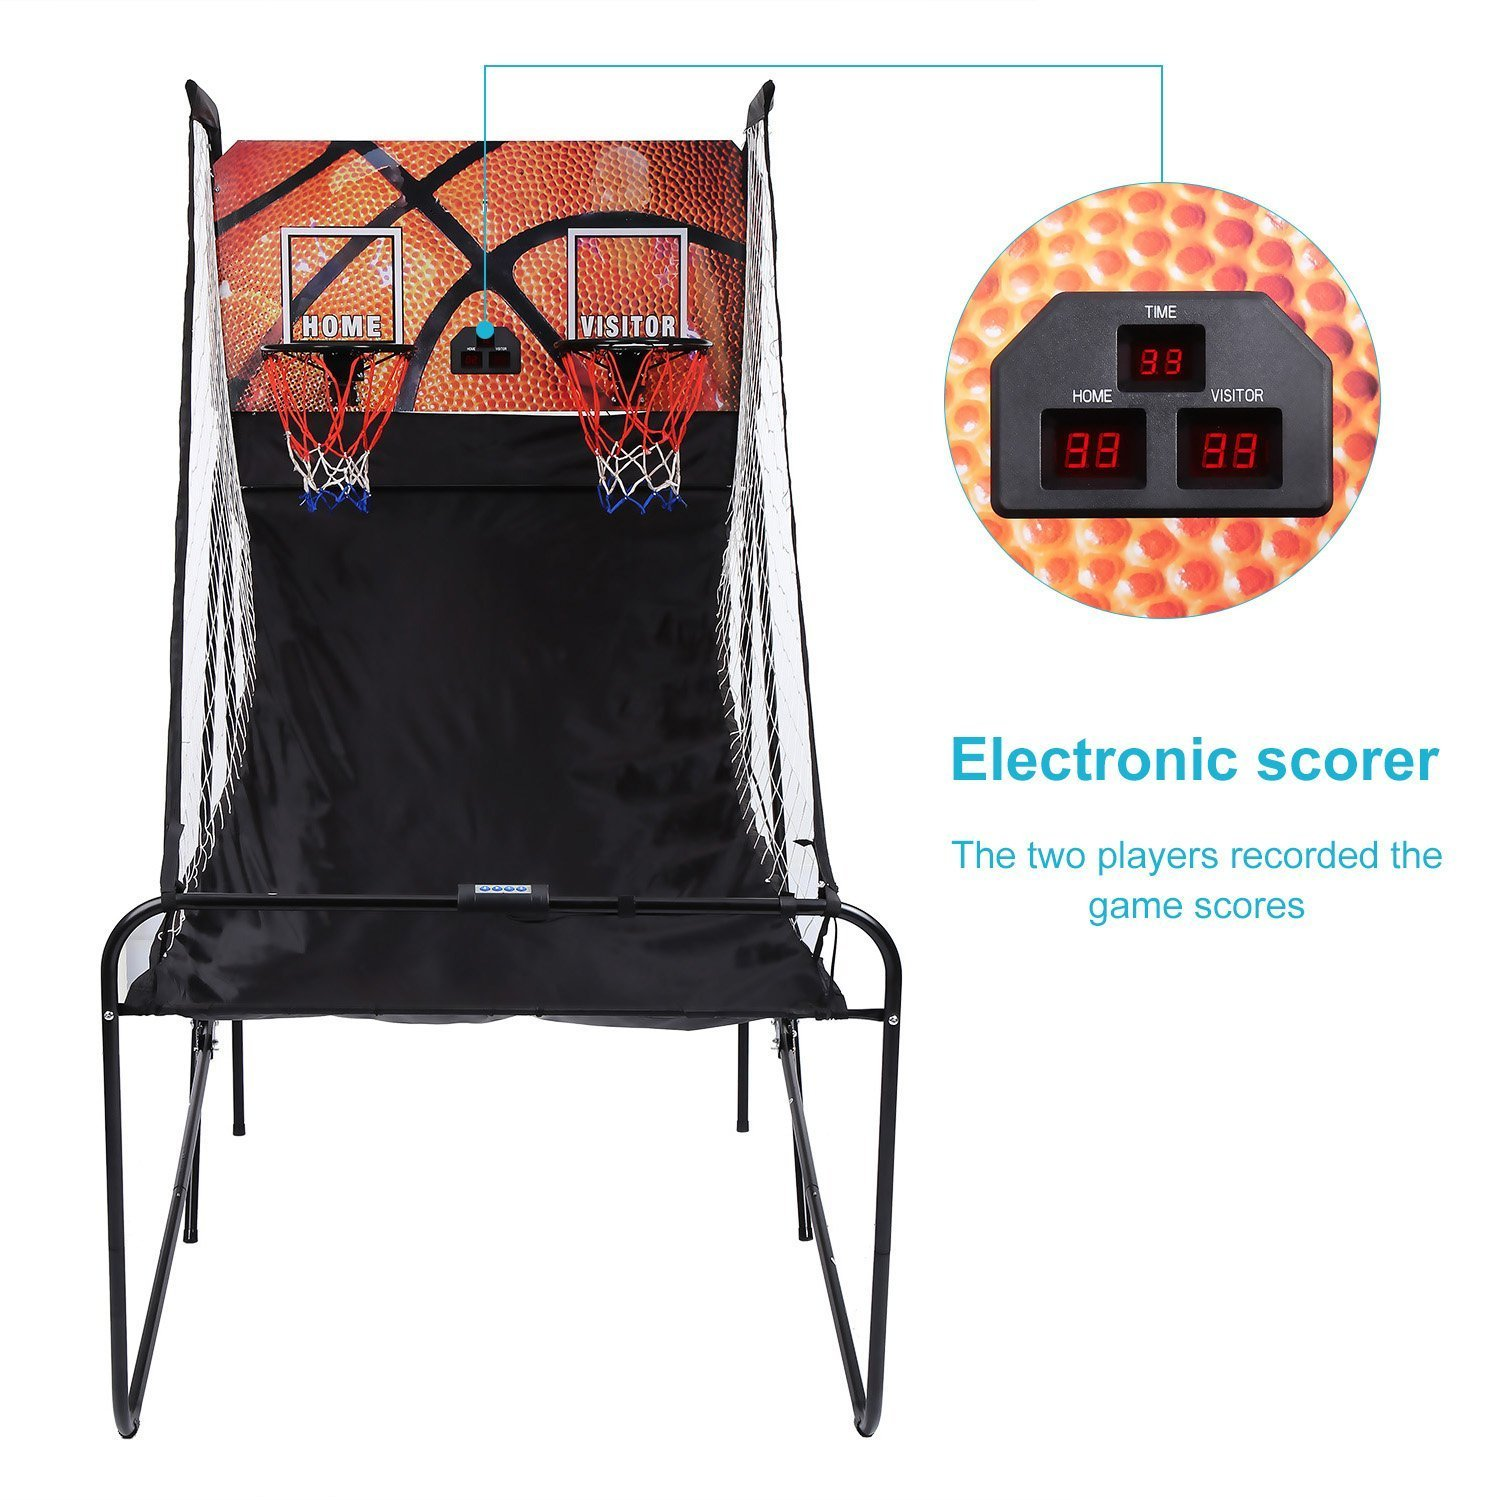 Sportcraft SIR00733 Quick Set-Up Basketball Arcade 8 Game Modes, 2-Players, Setup Less Than 10 Mins, No Tools Required, Heavy Duty 1'' Steel Tube by Sportcraft (Image #11)